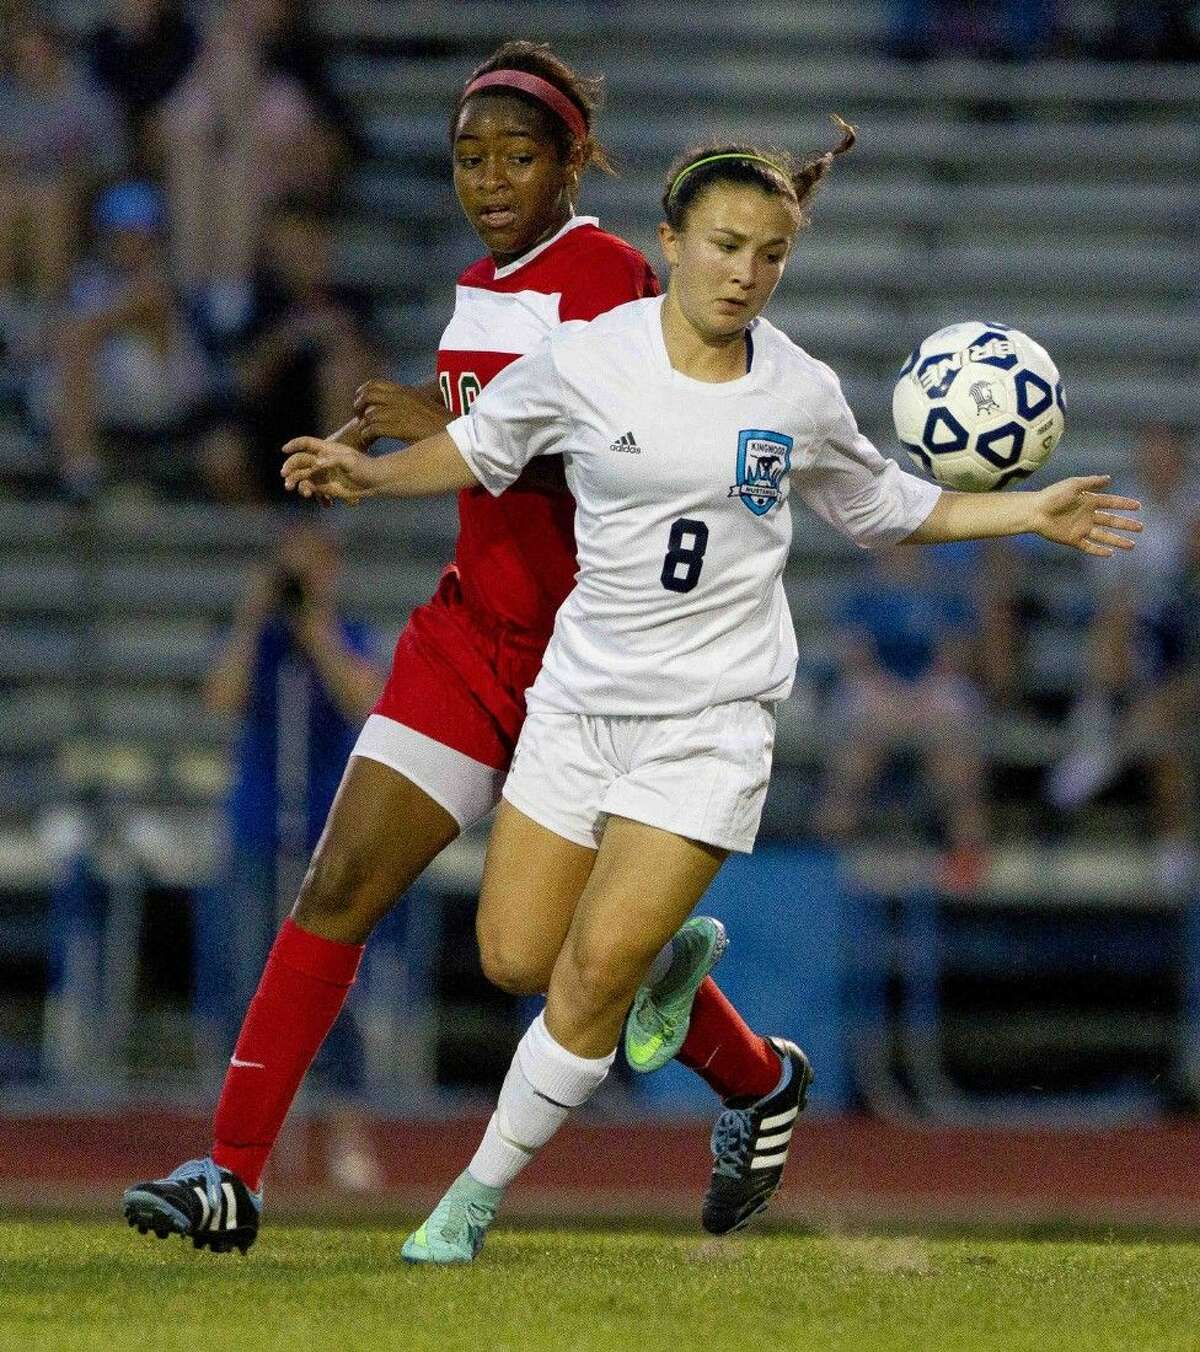 Kingwood's Catherine Childs looks to control the ball as The Woodlands forward Jazzy Richards chases her down during the first period of a District 16-6A girls soccer game at Kingwood High School Friday. The Woodlands defeated Kingwood 3-0. Go to HCNpics.com to purchase this photo and others like it.